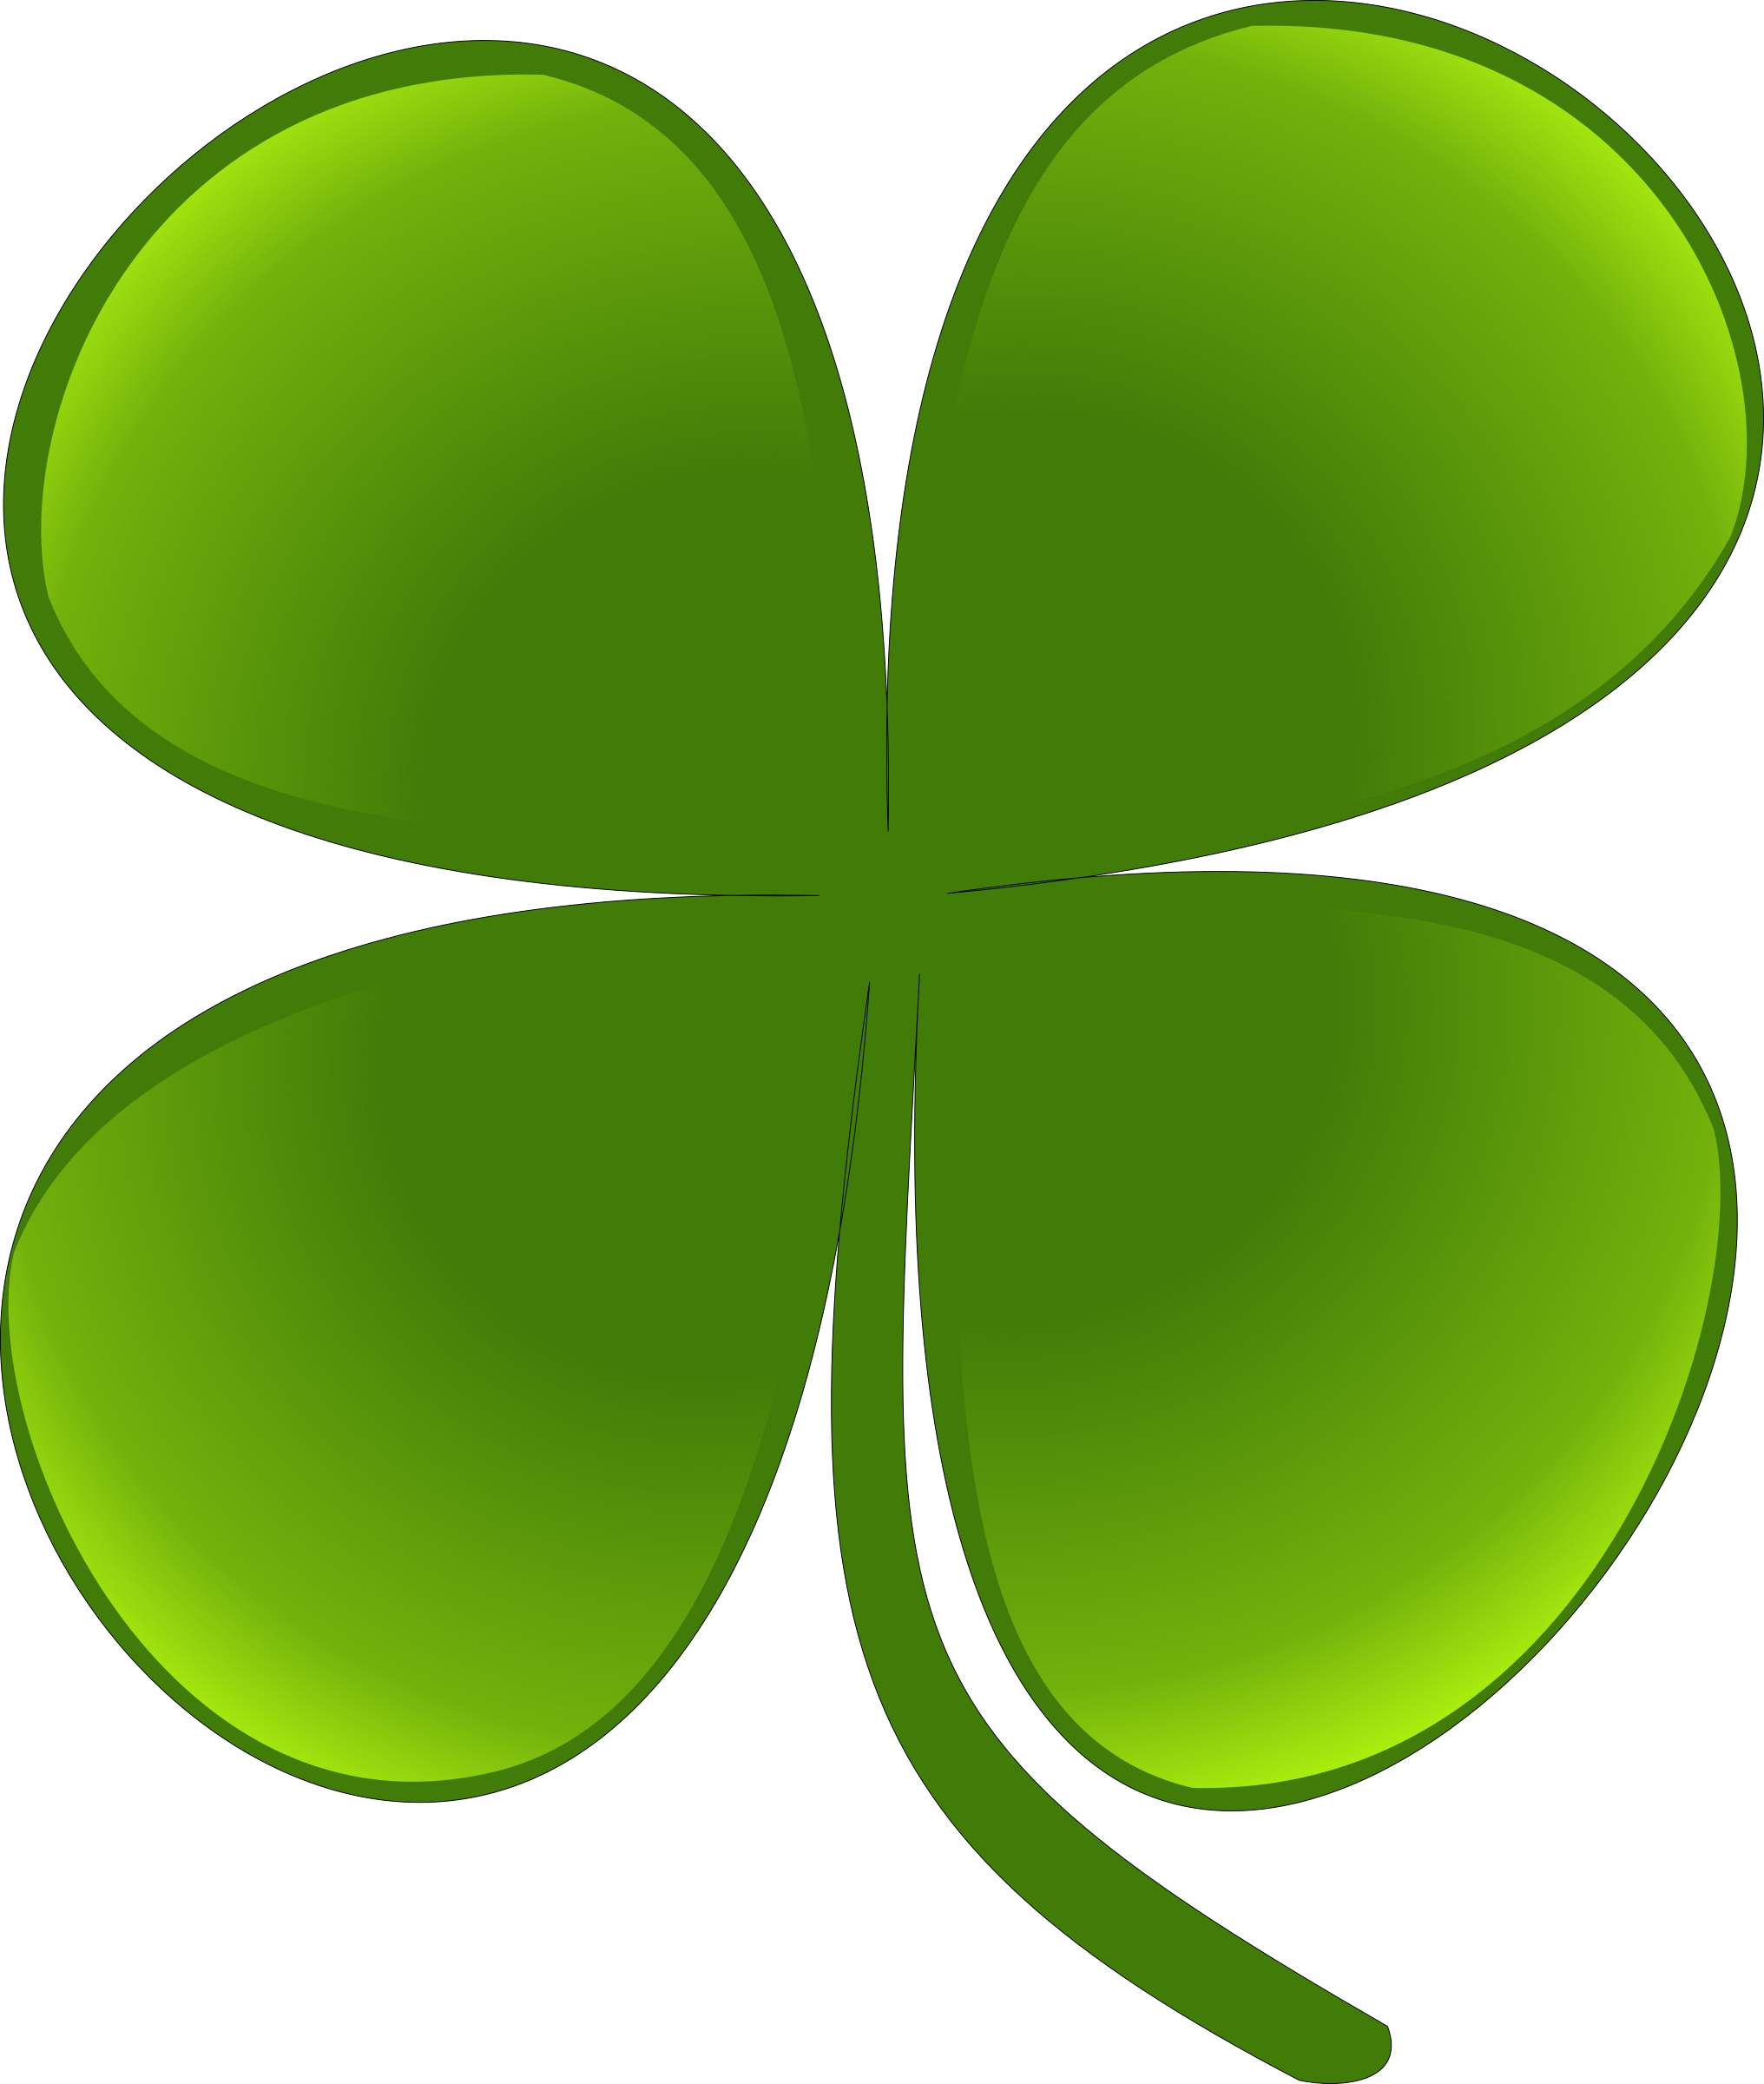 shamrock for march natha 01 by eady